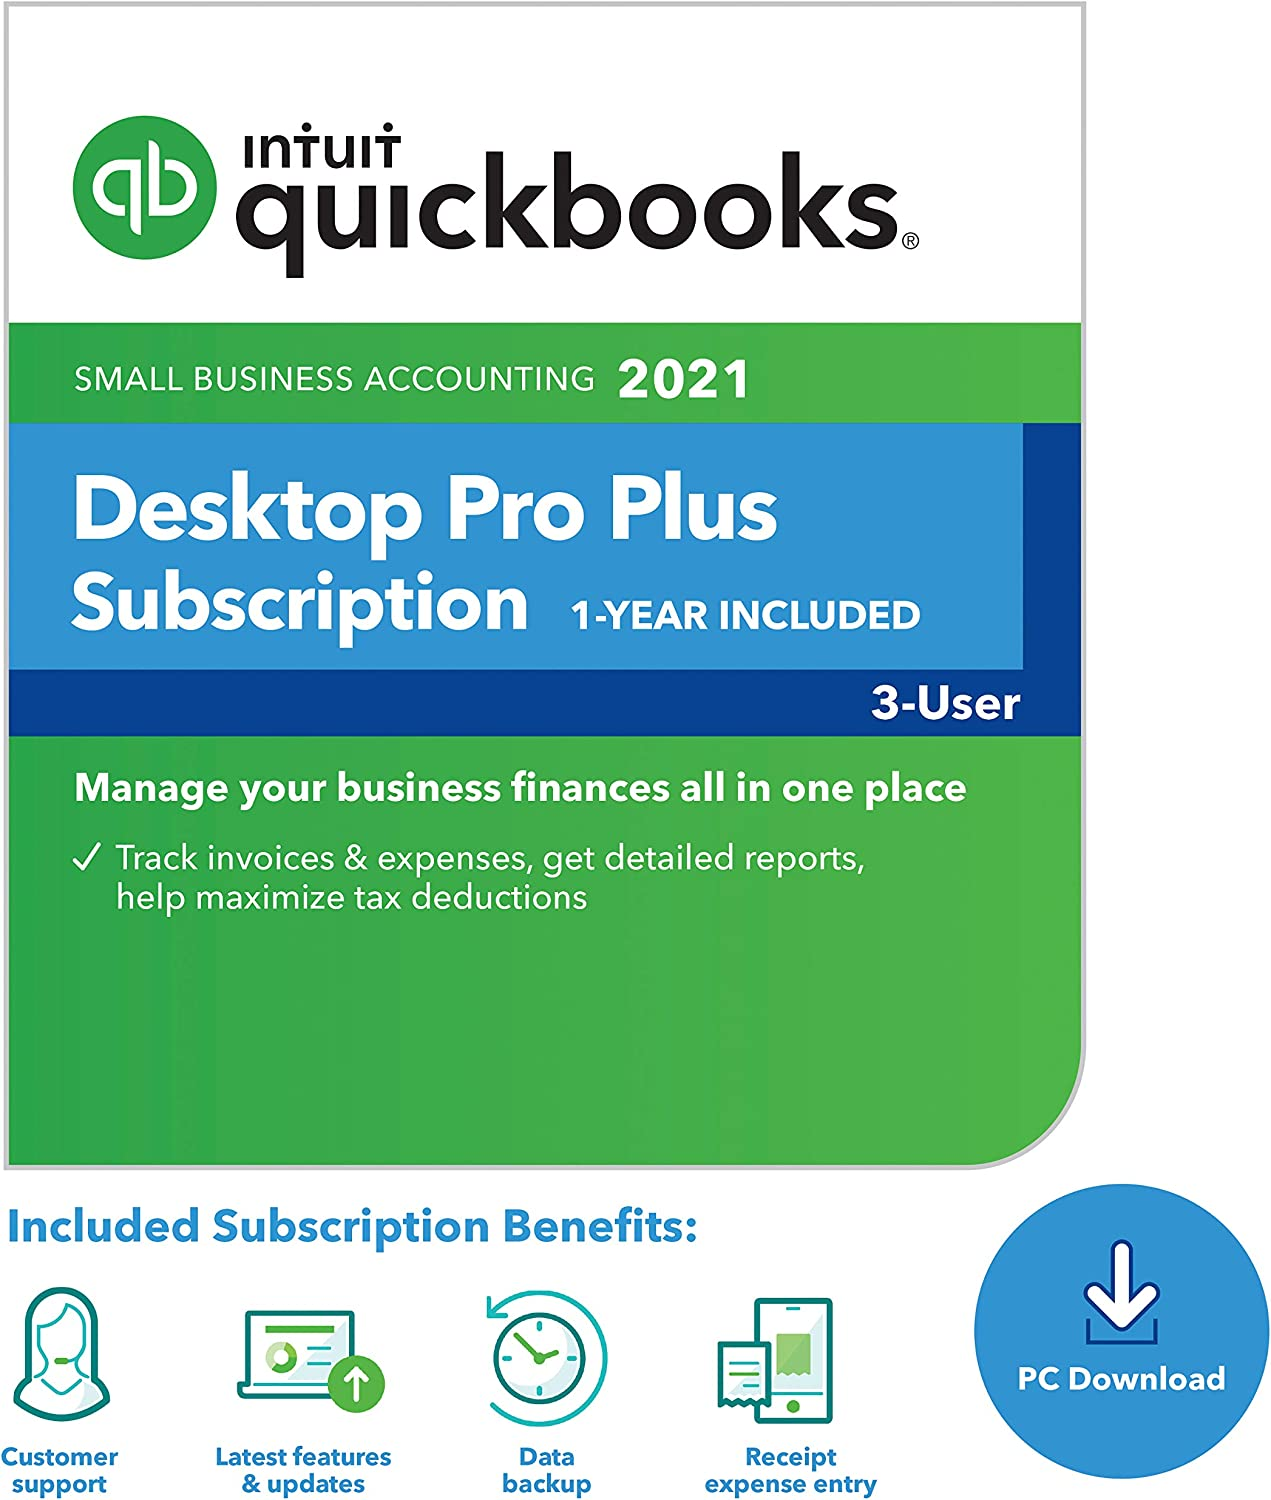 QuickBooks Desktop Pro Plus 2021 Accounting Software for Small Business 1-Year Subscription - 3 user [PC Download code]